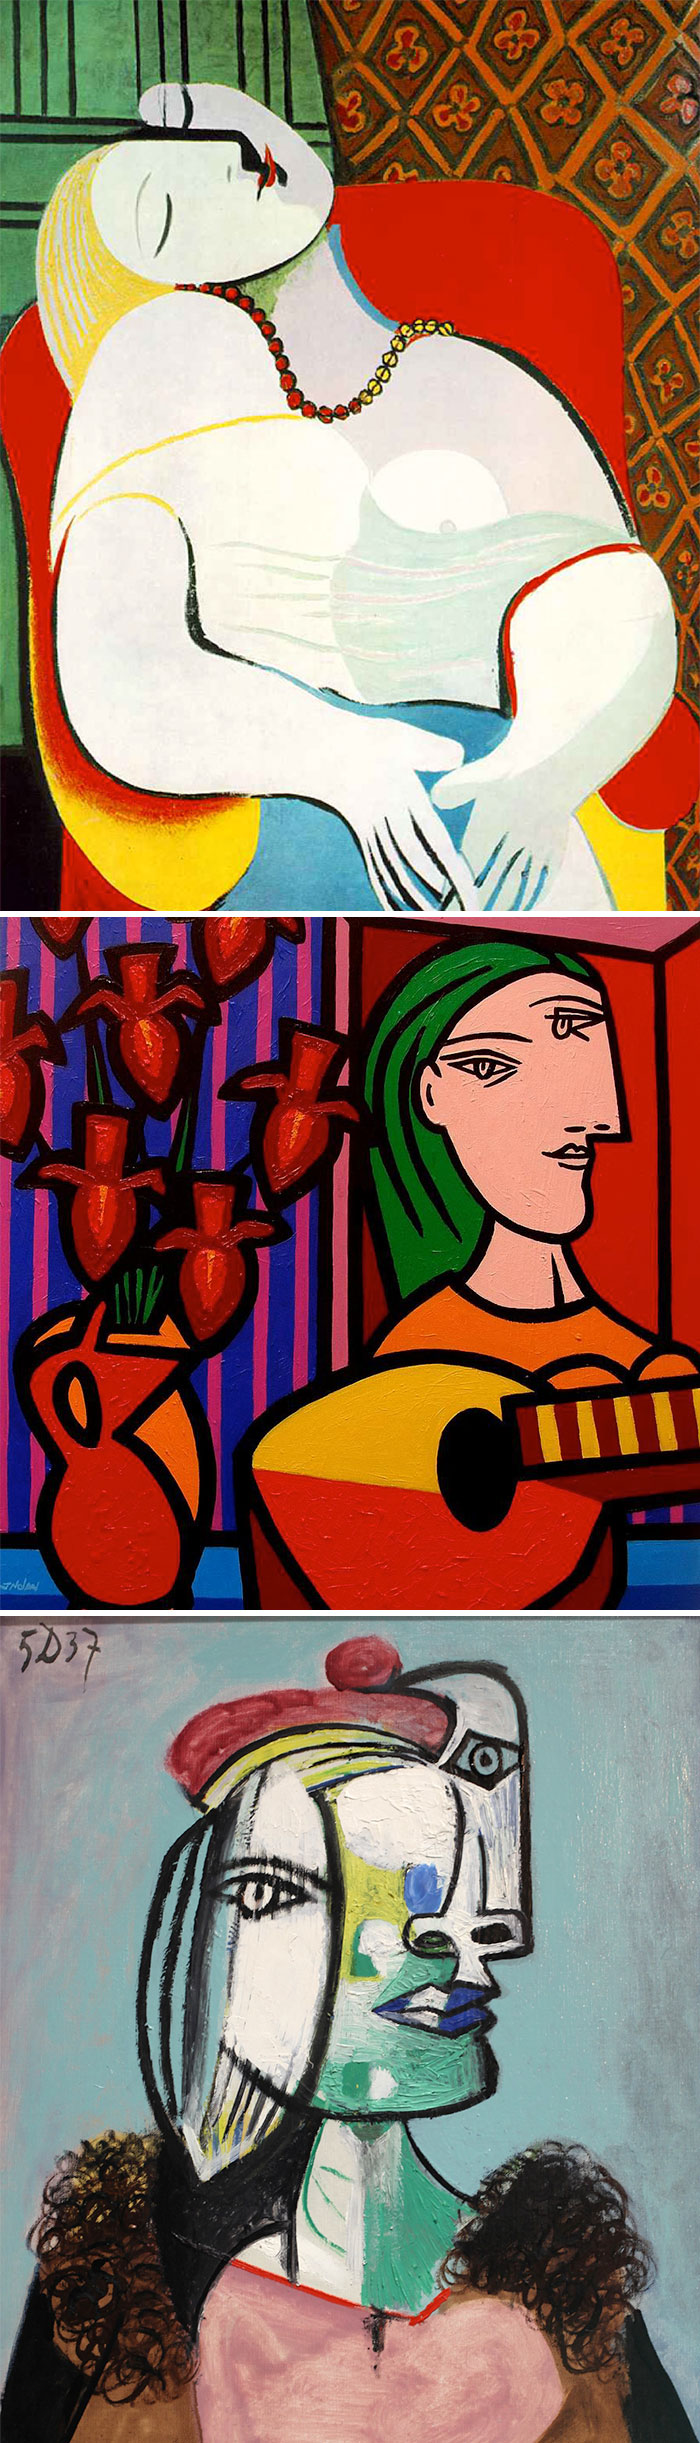 how to identify famous painters - picasso